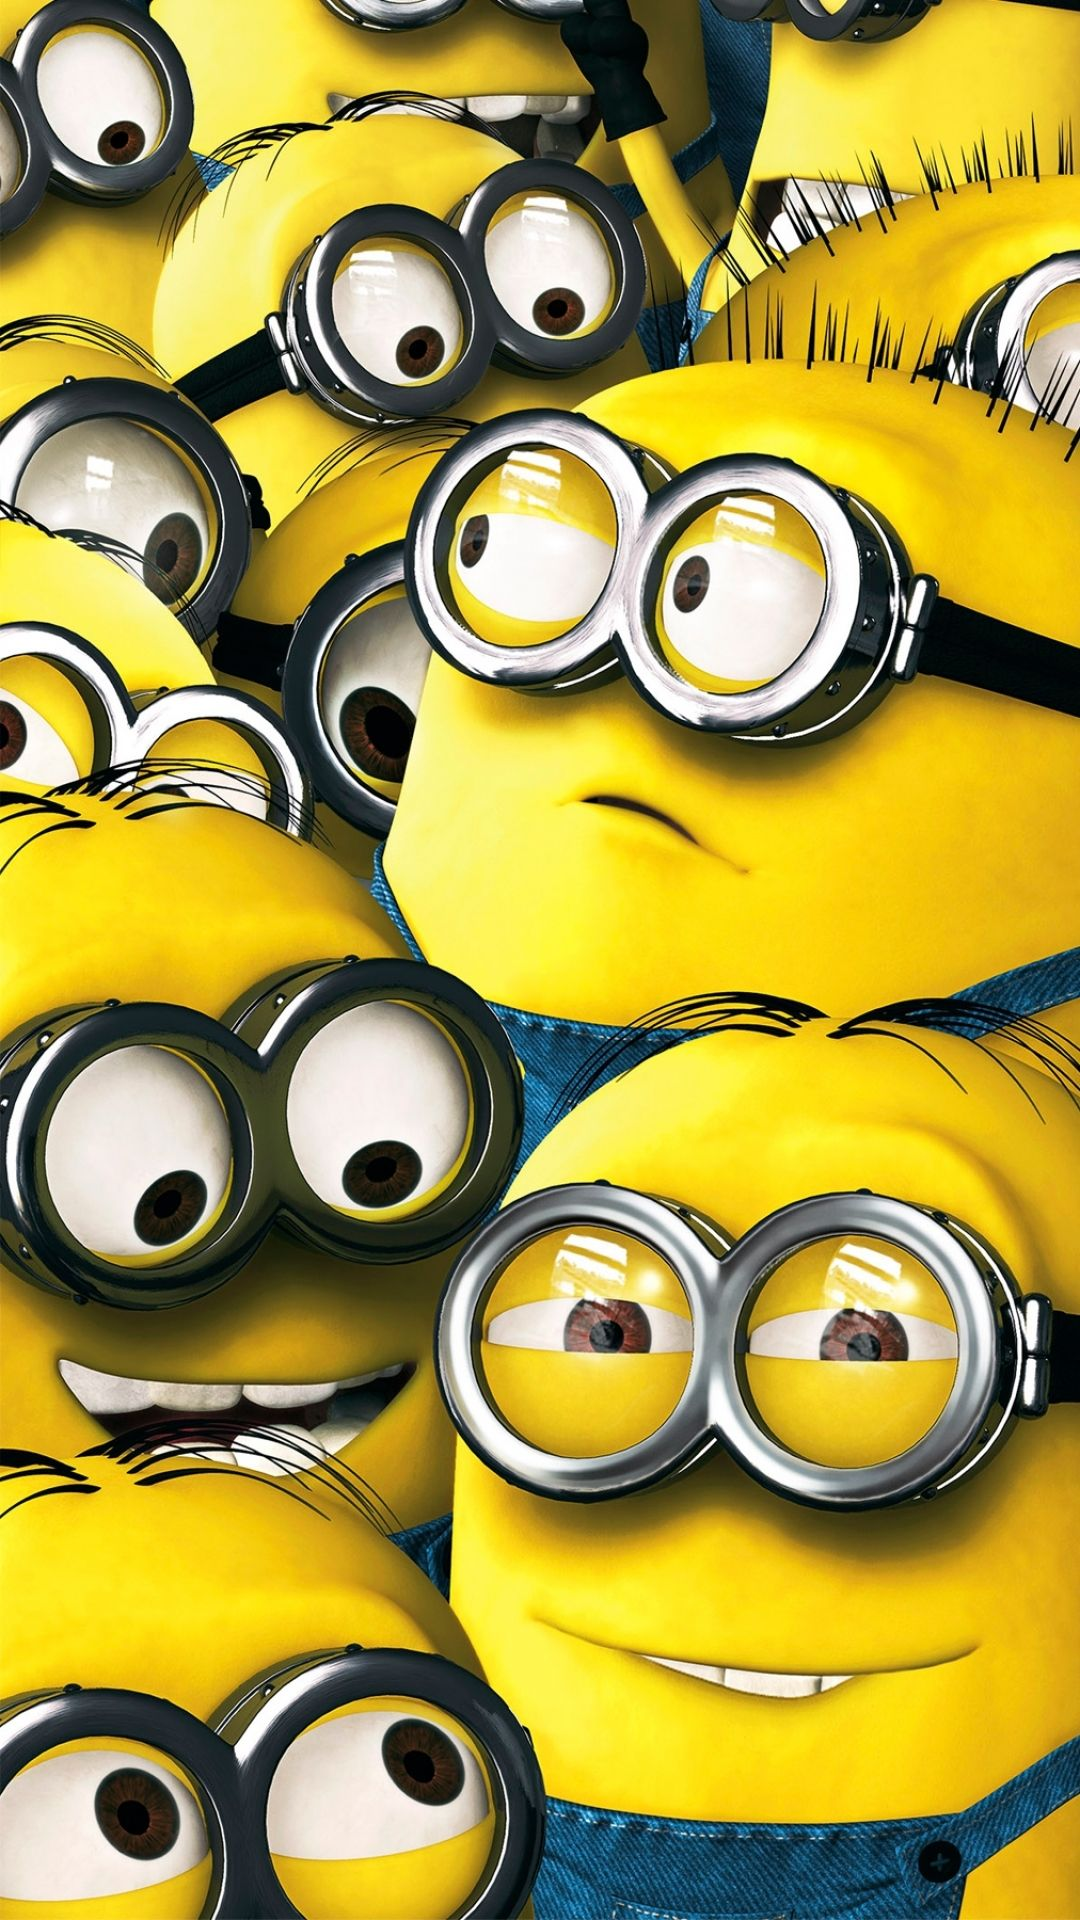 Despicable Me Minion iPhone Wallpapers Top Free Despicable